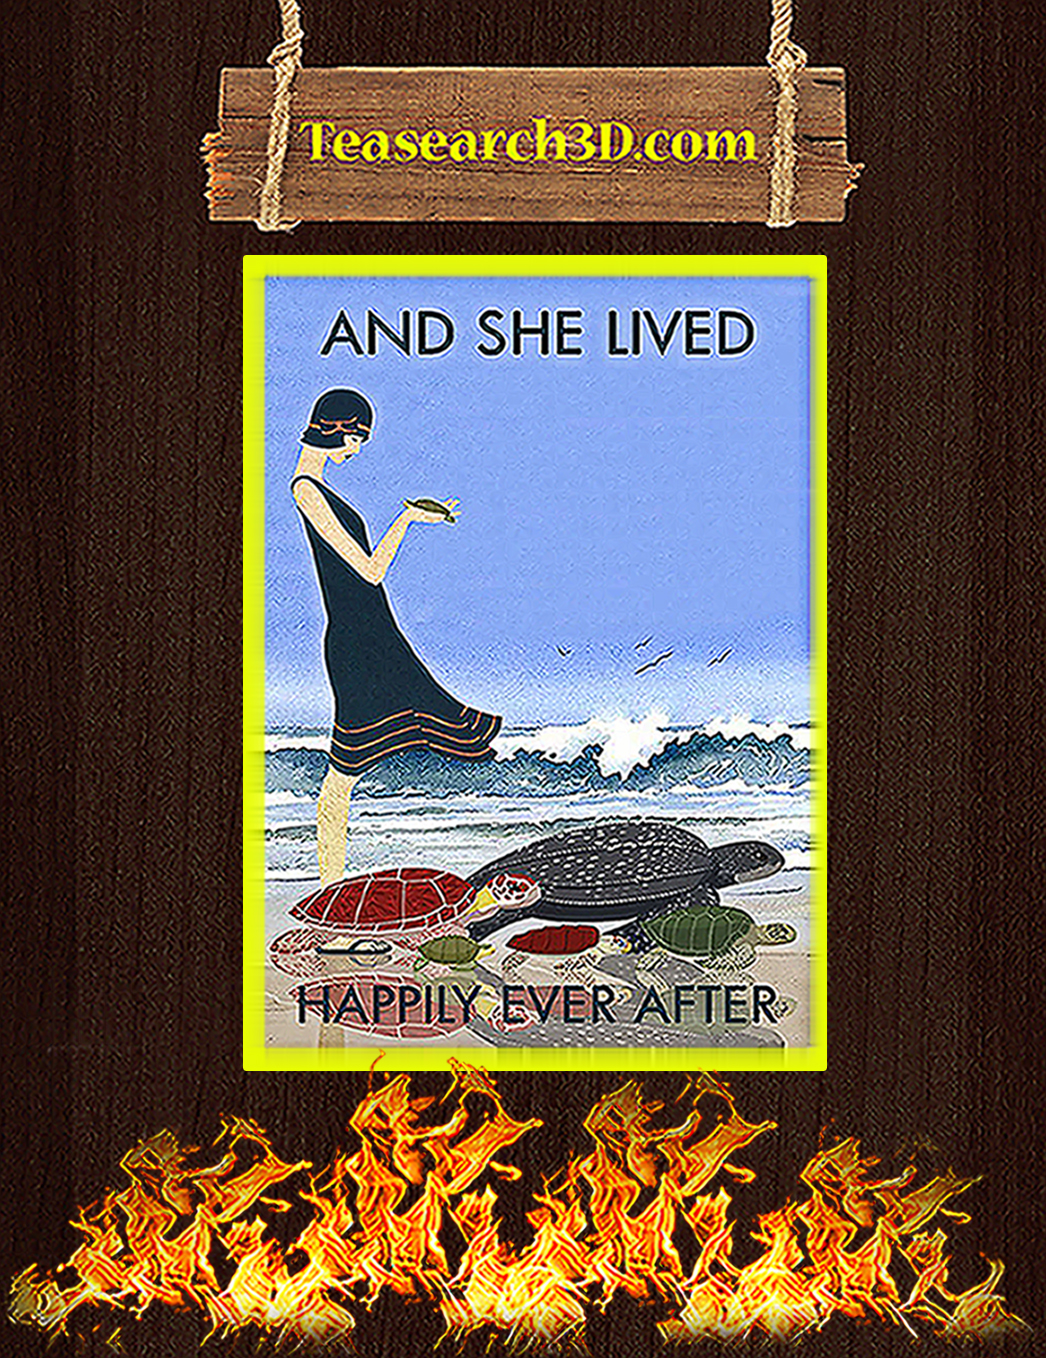 Beach and turtles and she lived happily ever after poster A1